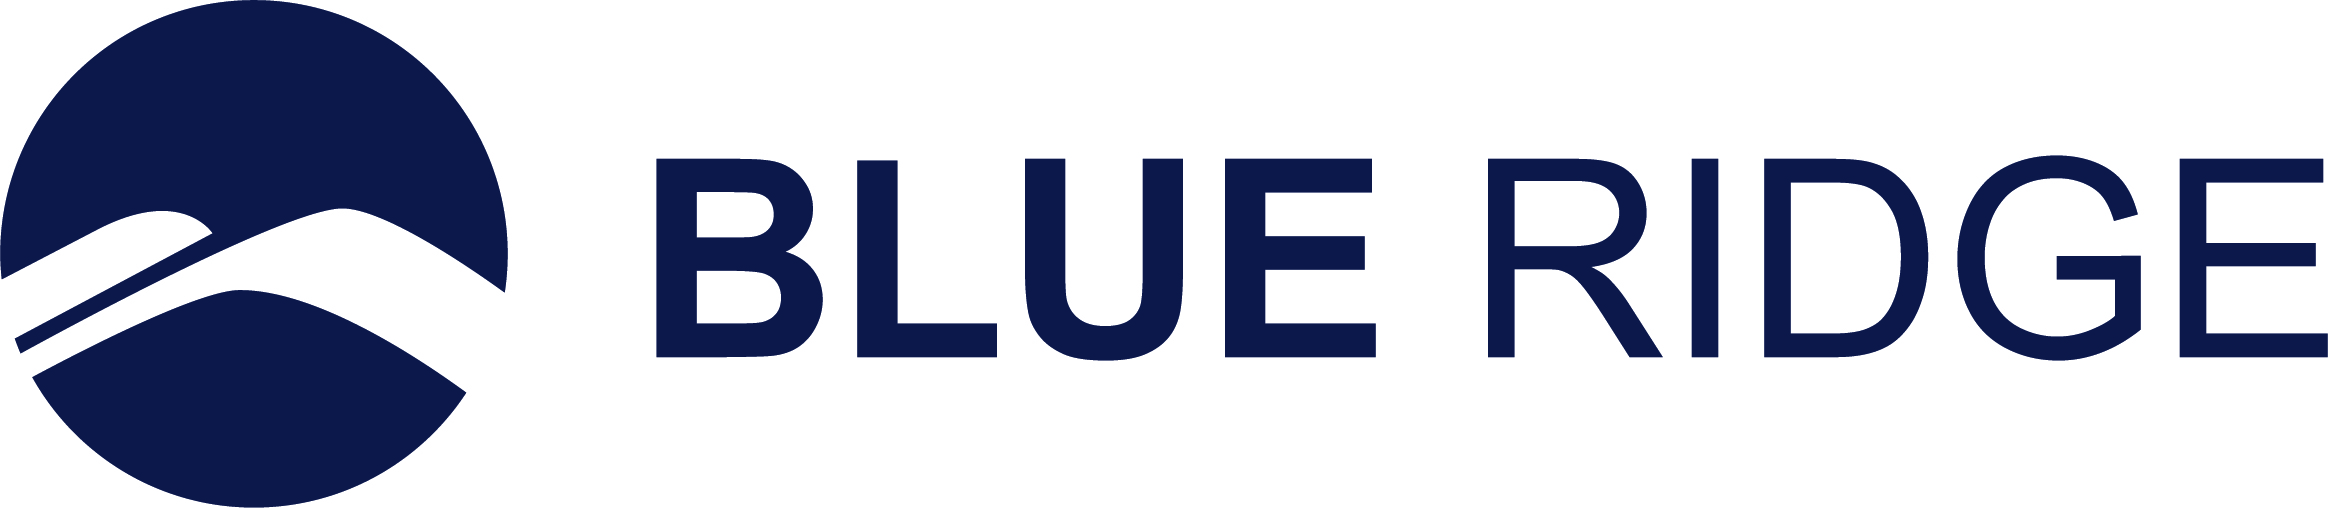 Ed Rusch, CMO at Blue Ridge Shares Importance of Great Marketing in Forbes